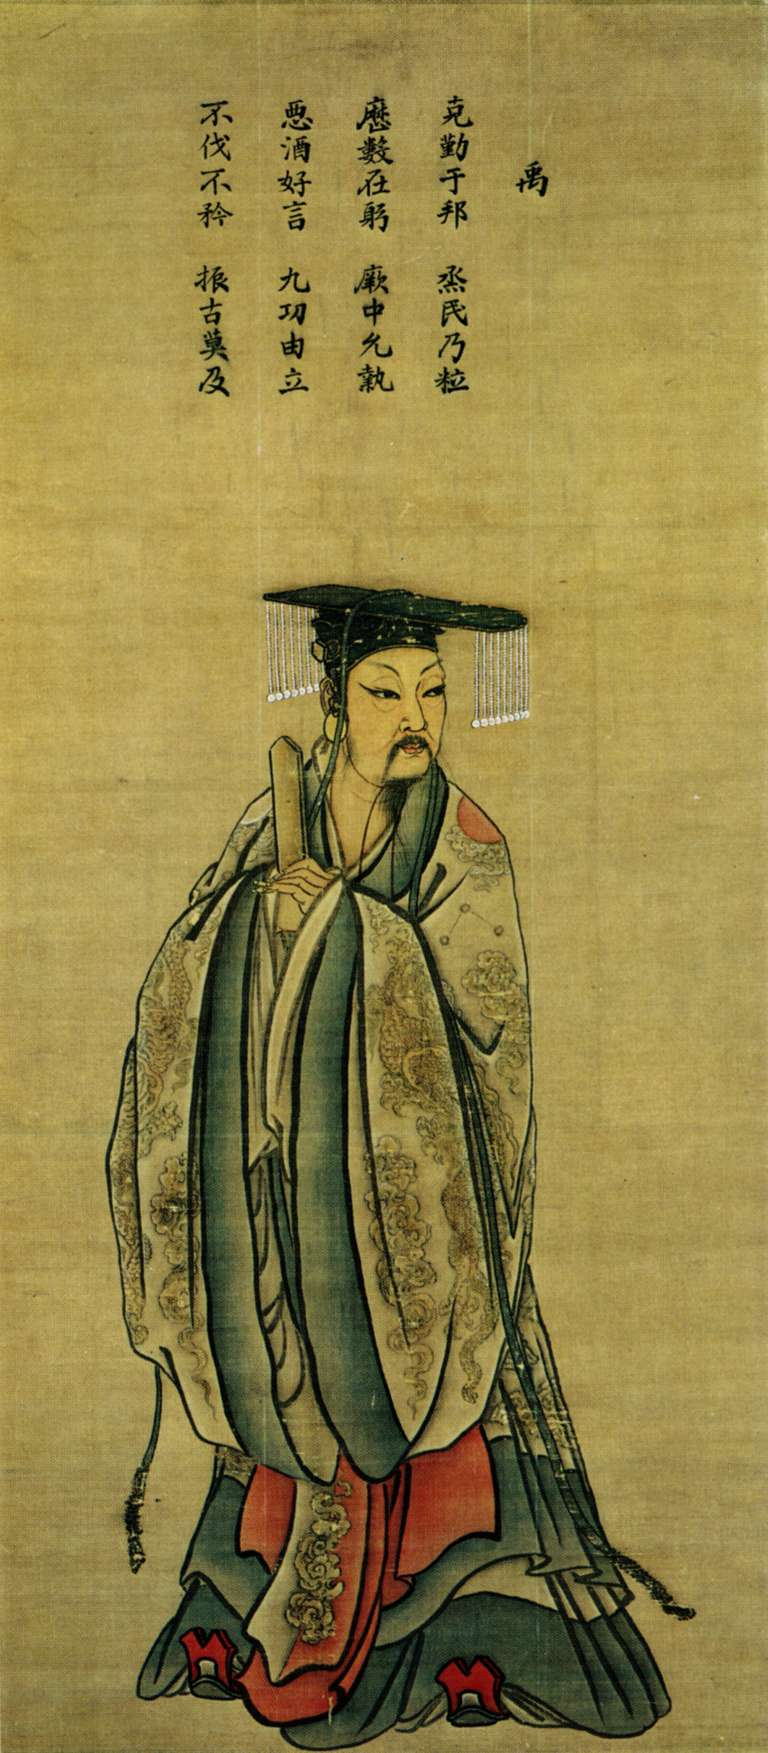 King Yu (禹) as imagined by by Song Dynasty painter Ma Lin (馬麟).